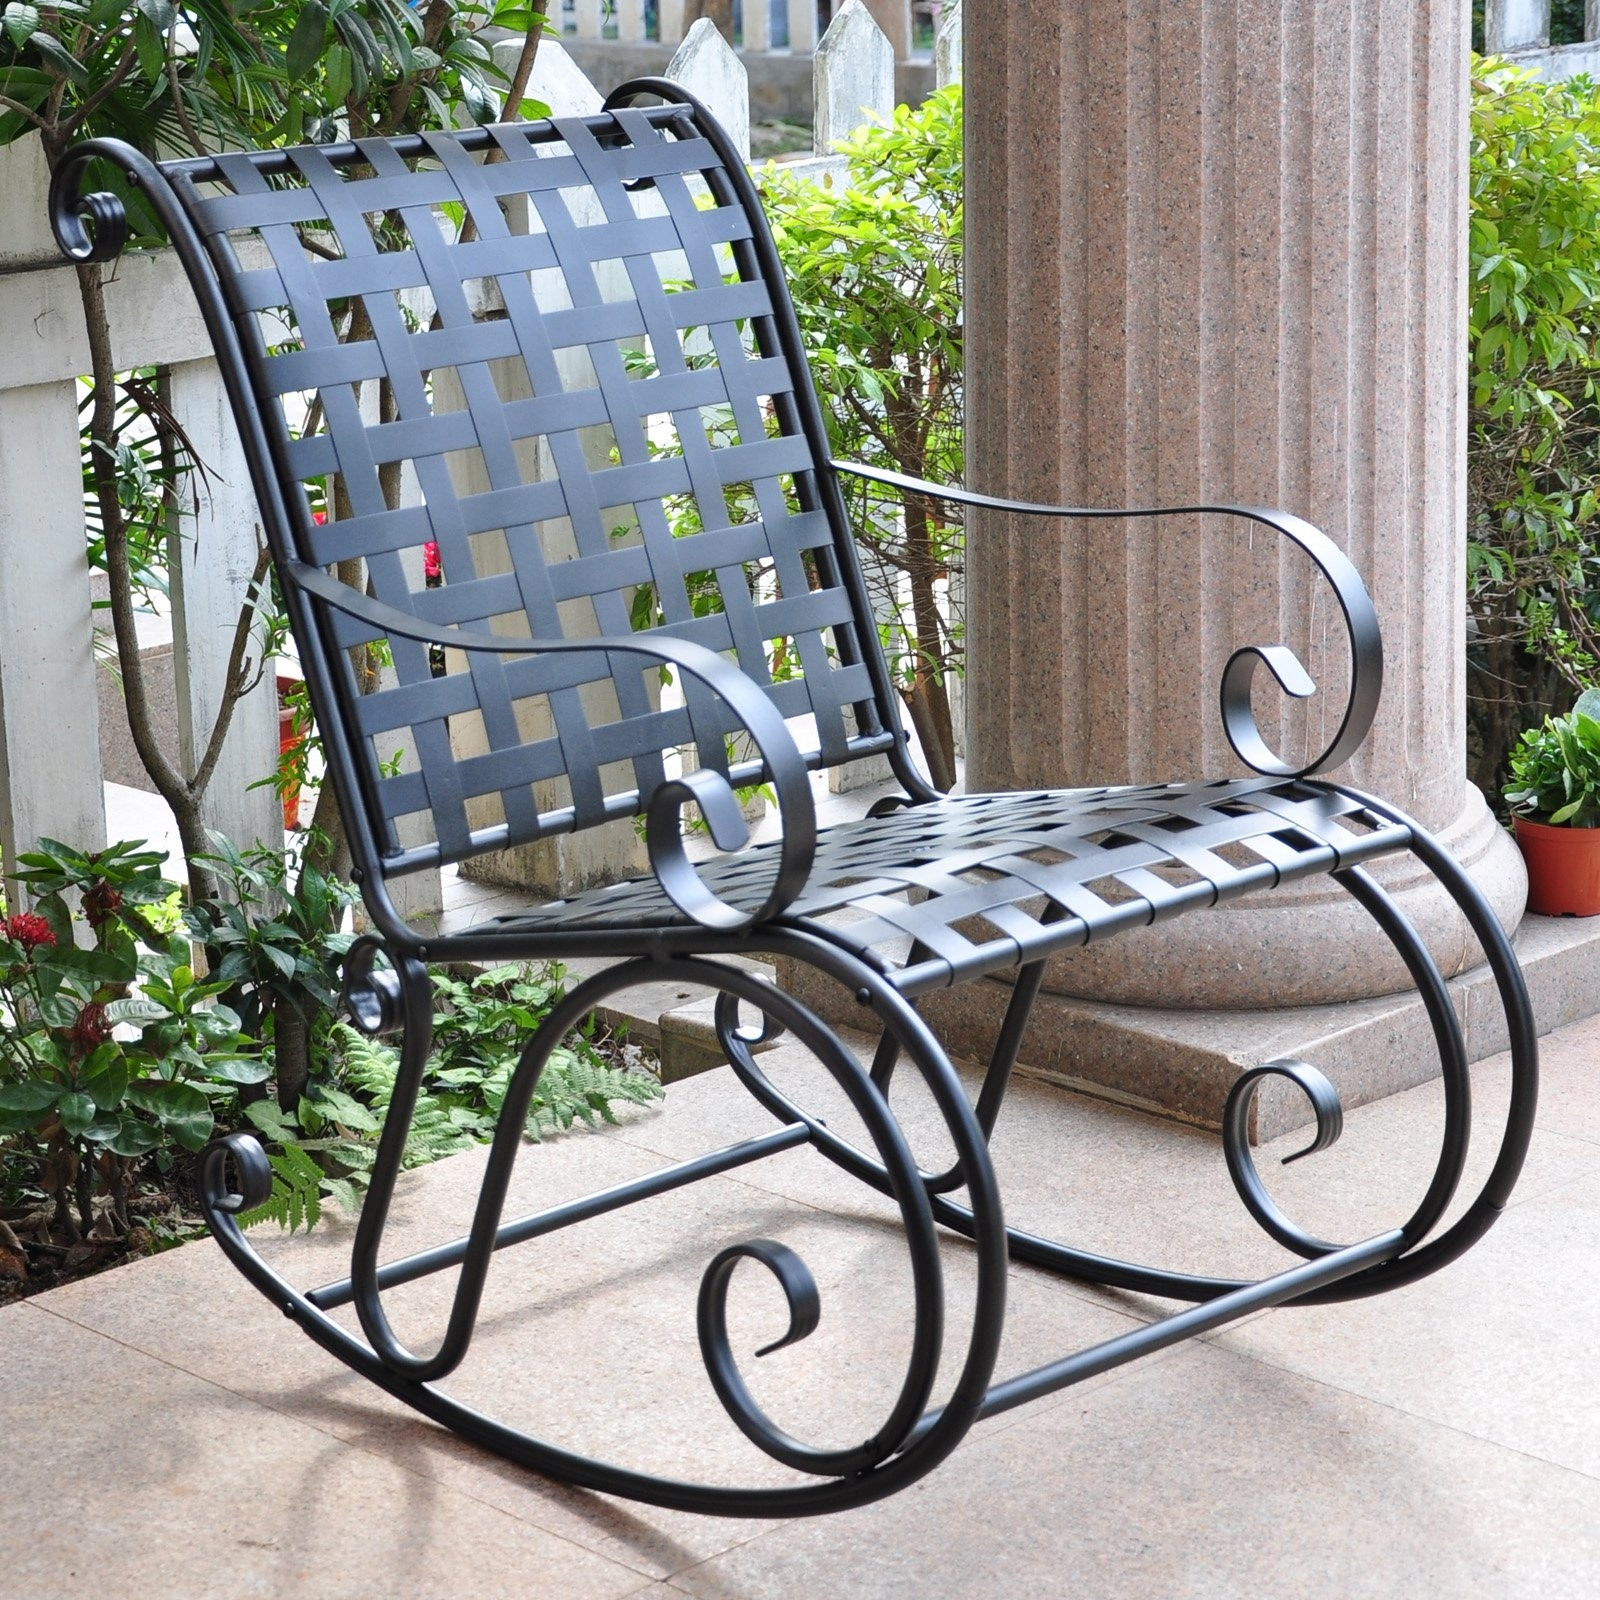 Popular Wrought Iron Patio Rocking Chairs Intended For Wrought Iron Rocking Chair Outdoor – Chair Design Ideas (View 14 of 20)